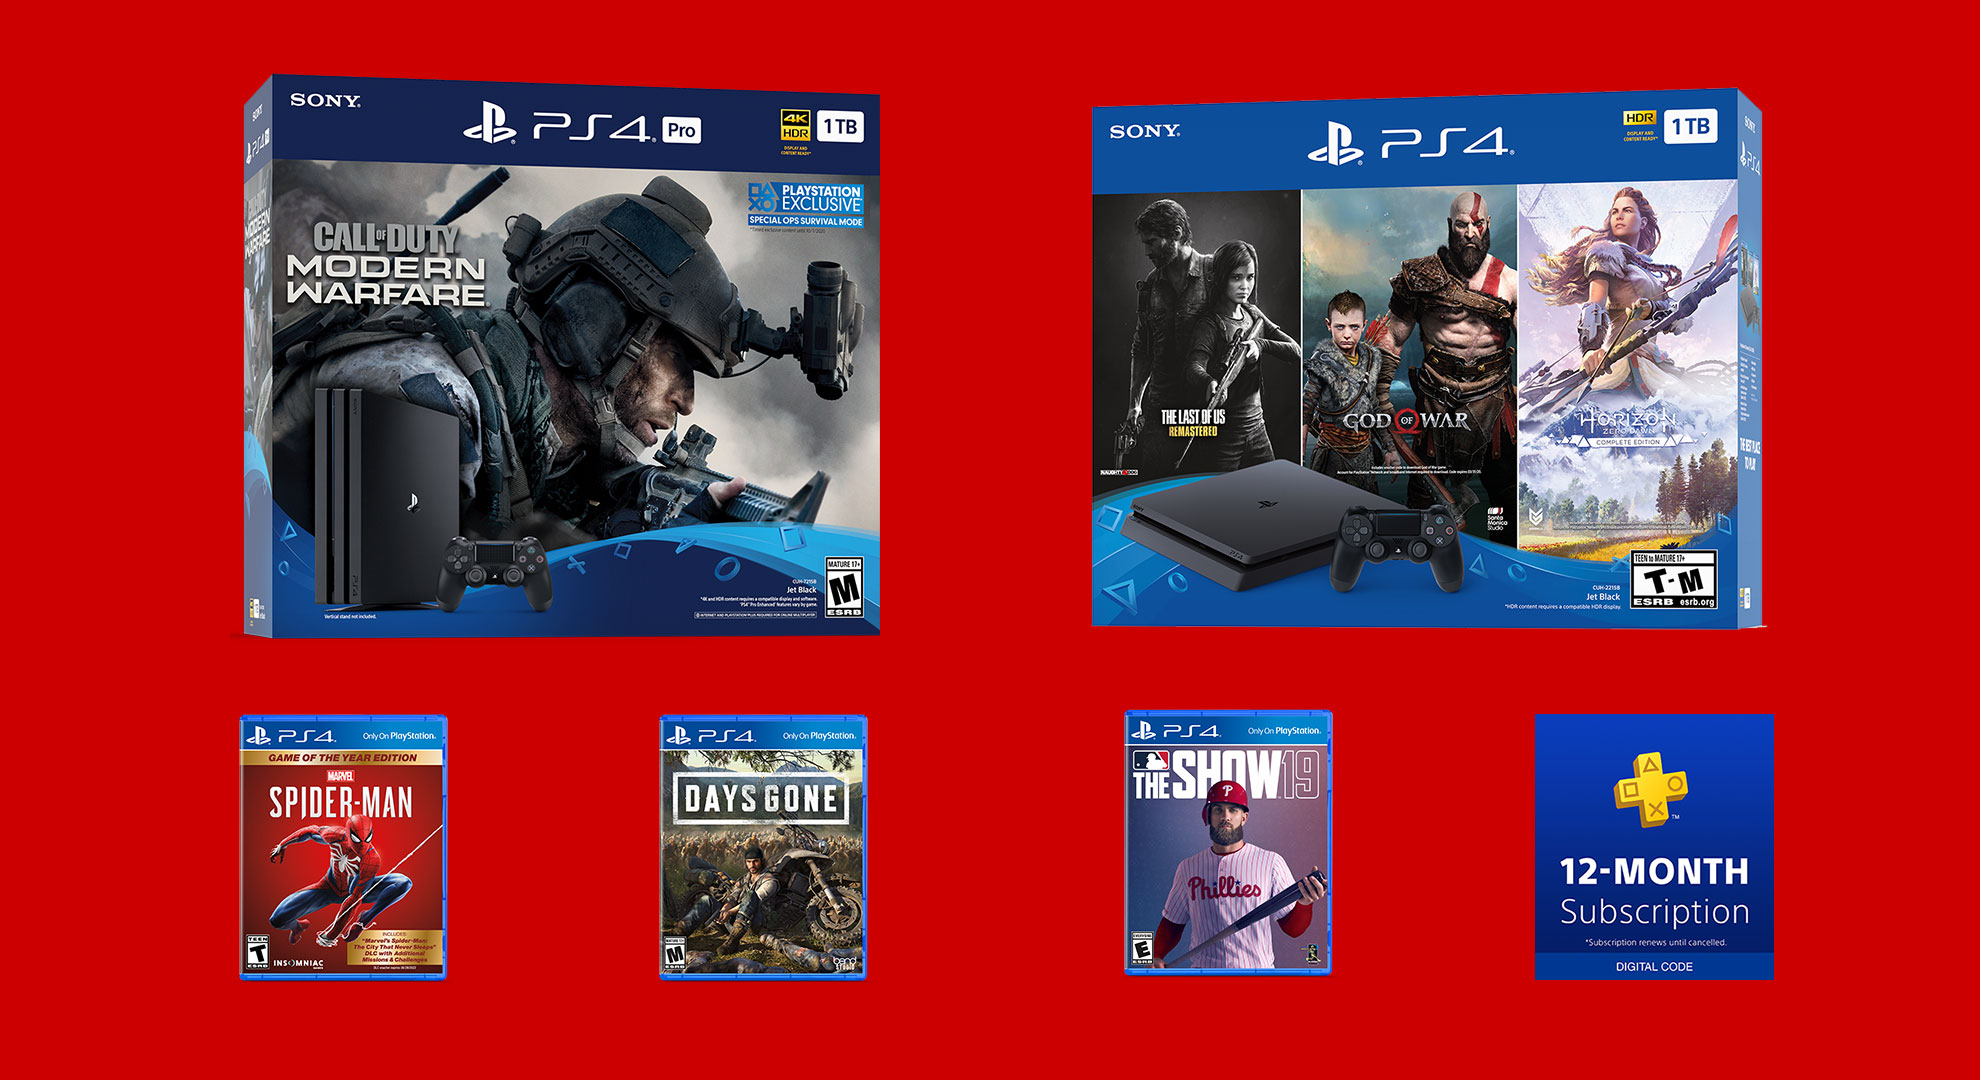 All the PlayStation 4 Black Friday deals that already went live screenshot